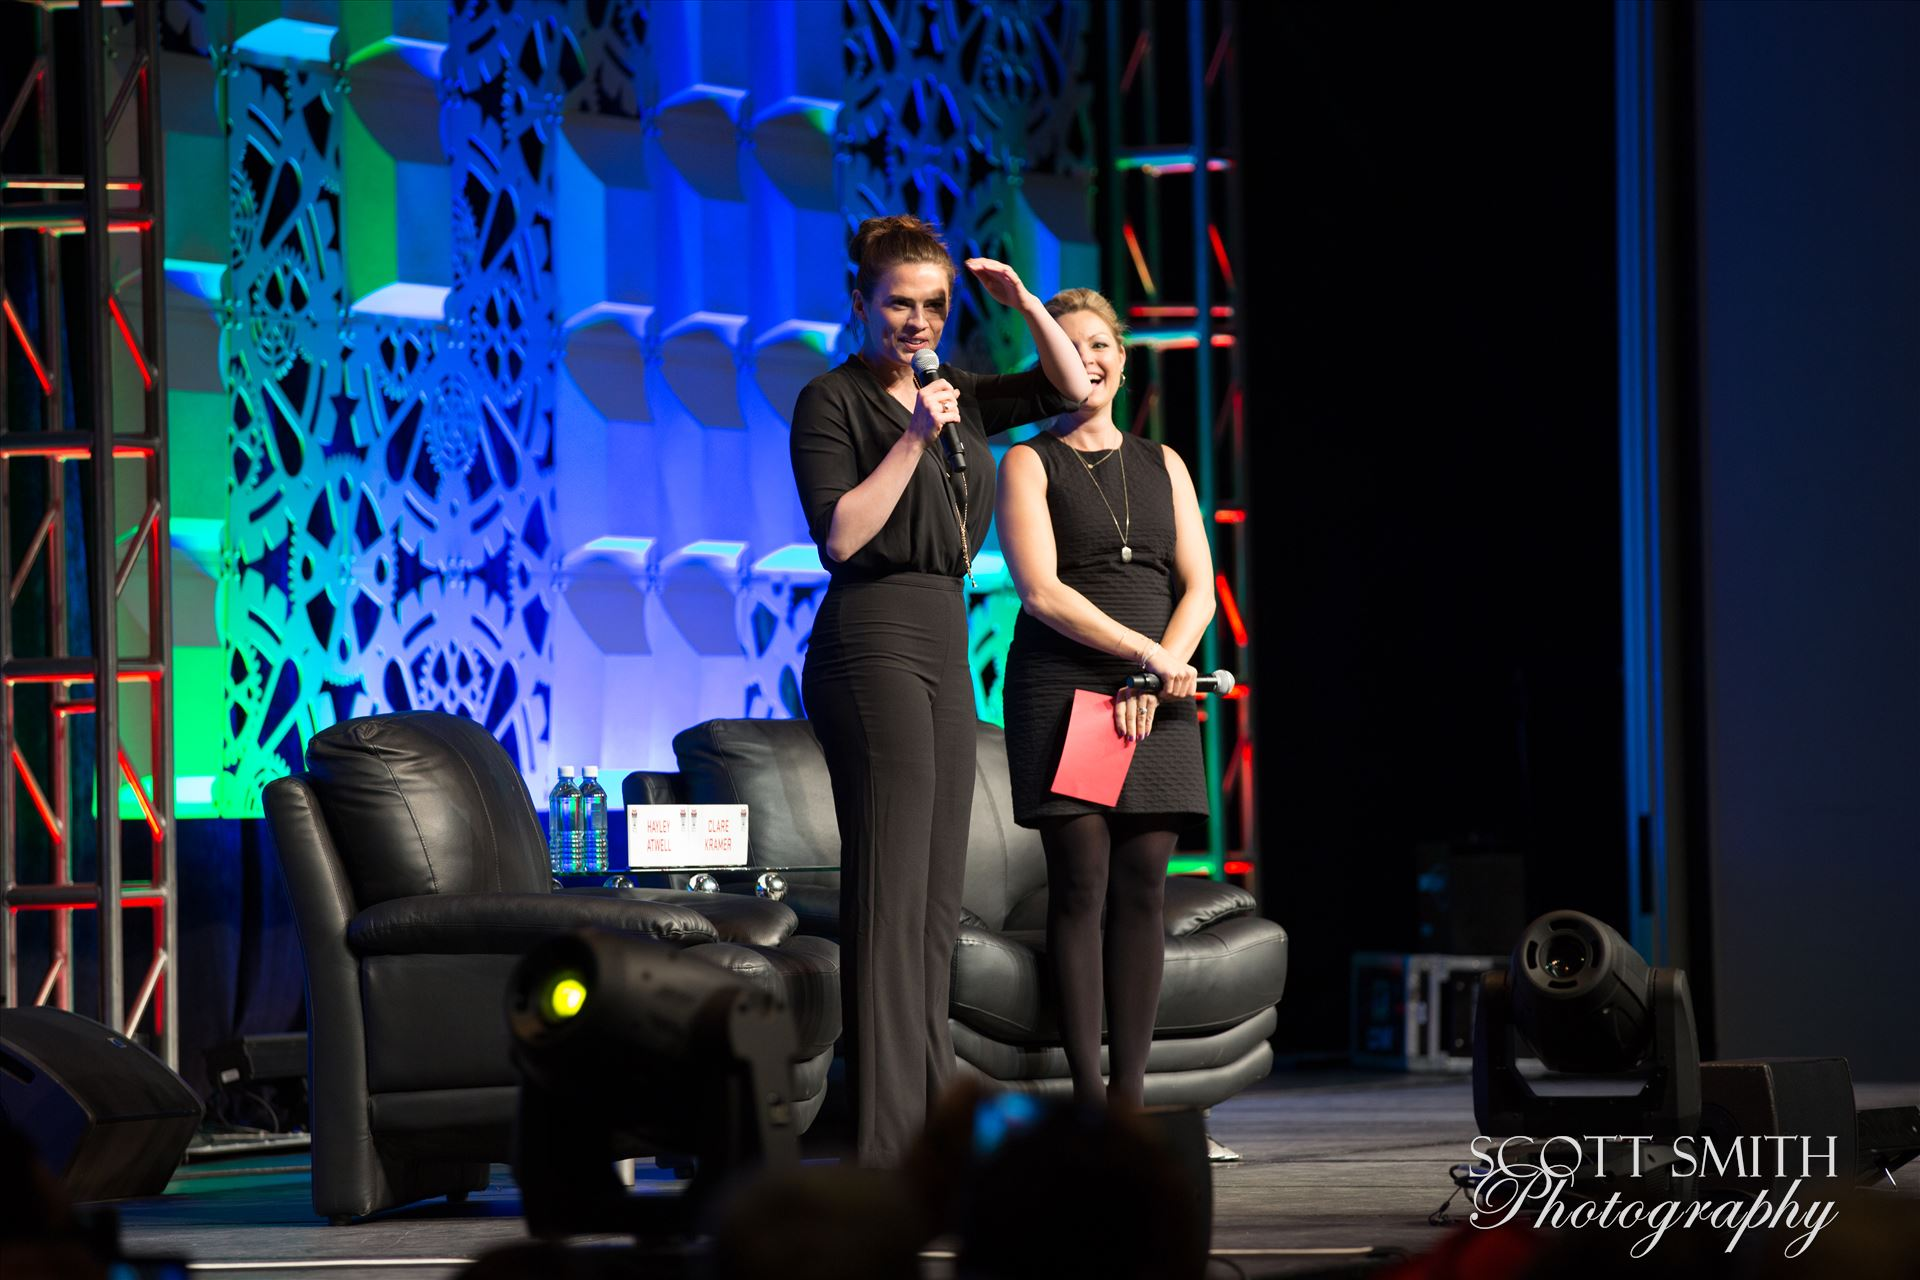 Denver Comic Con 2016 16 - Denver Comic Con 2016 at the Colorado Convention Center. Clare Kramer and Haley Atwell. by D Scott Smith